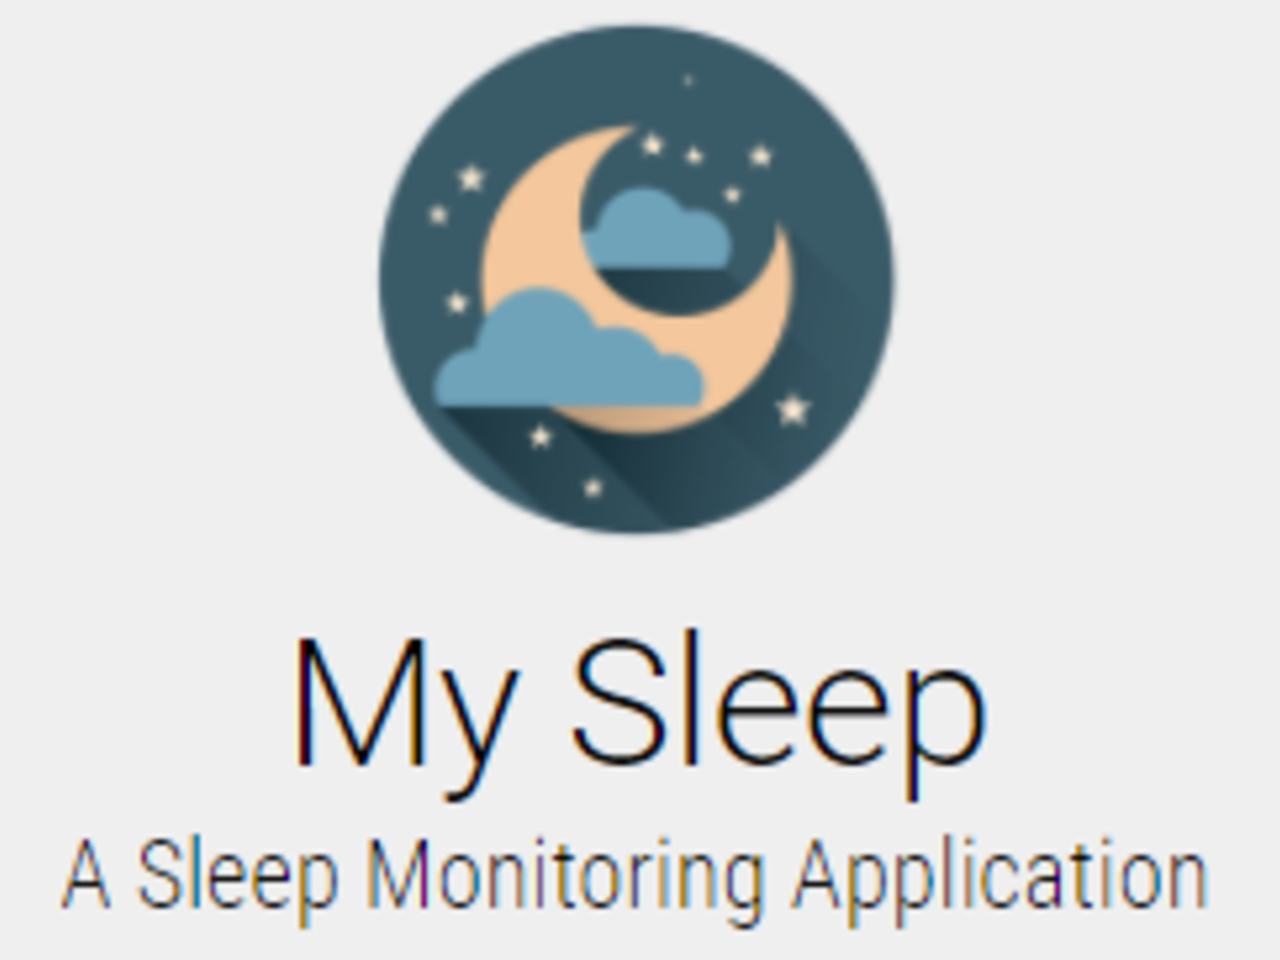 MySleep: A Sleep Monitoring Application